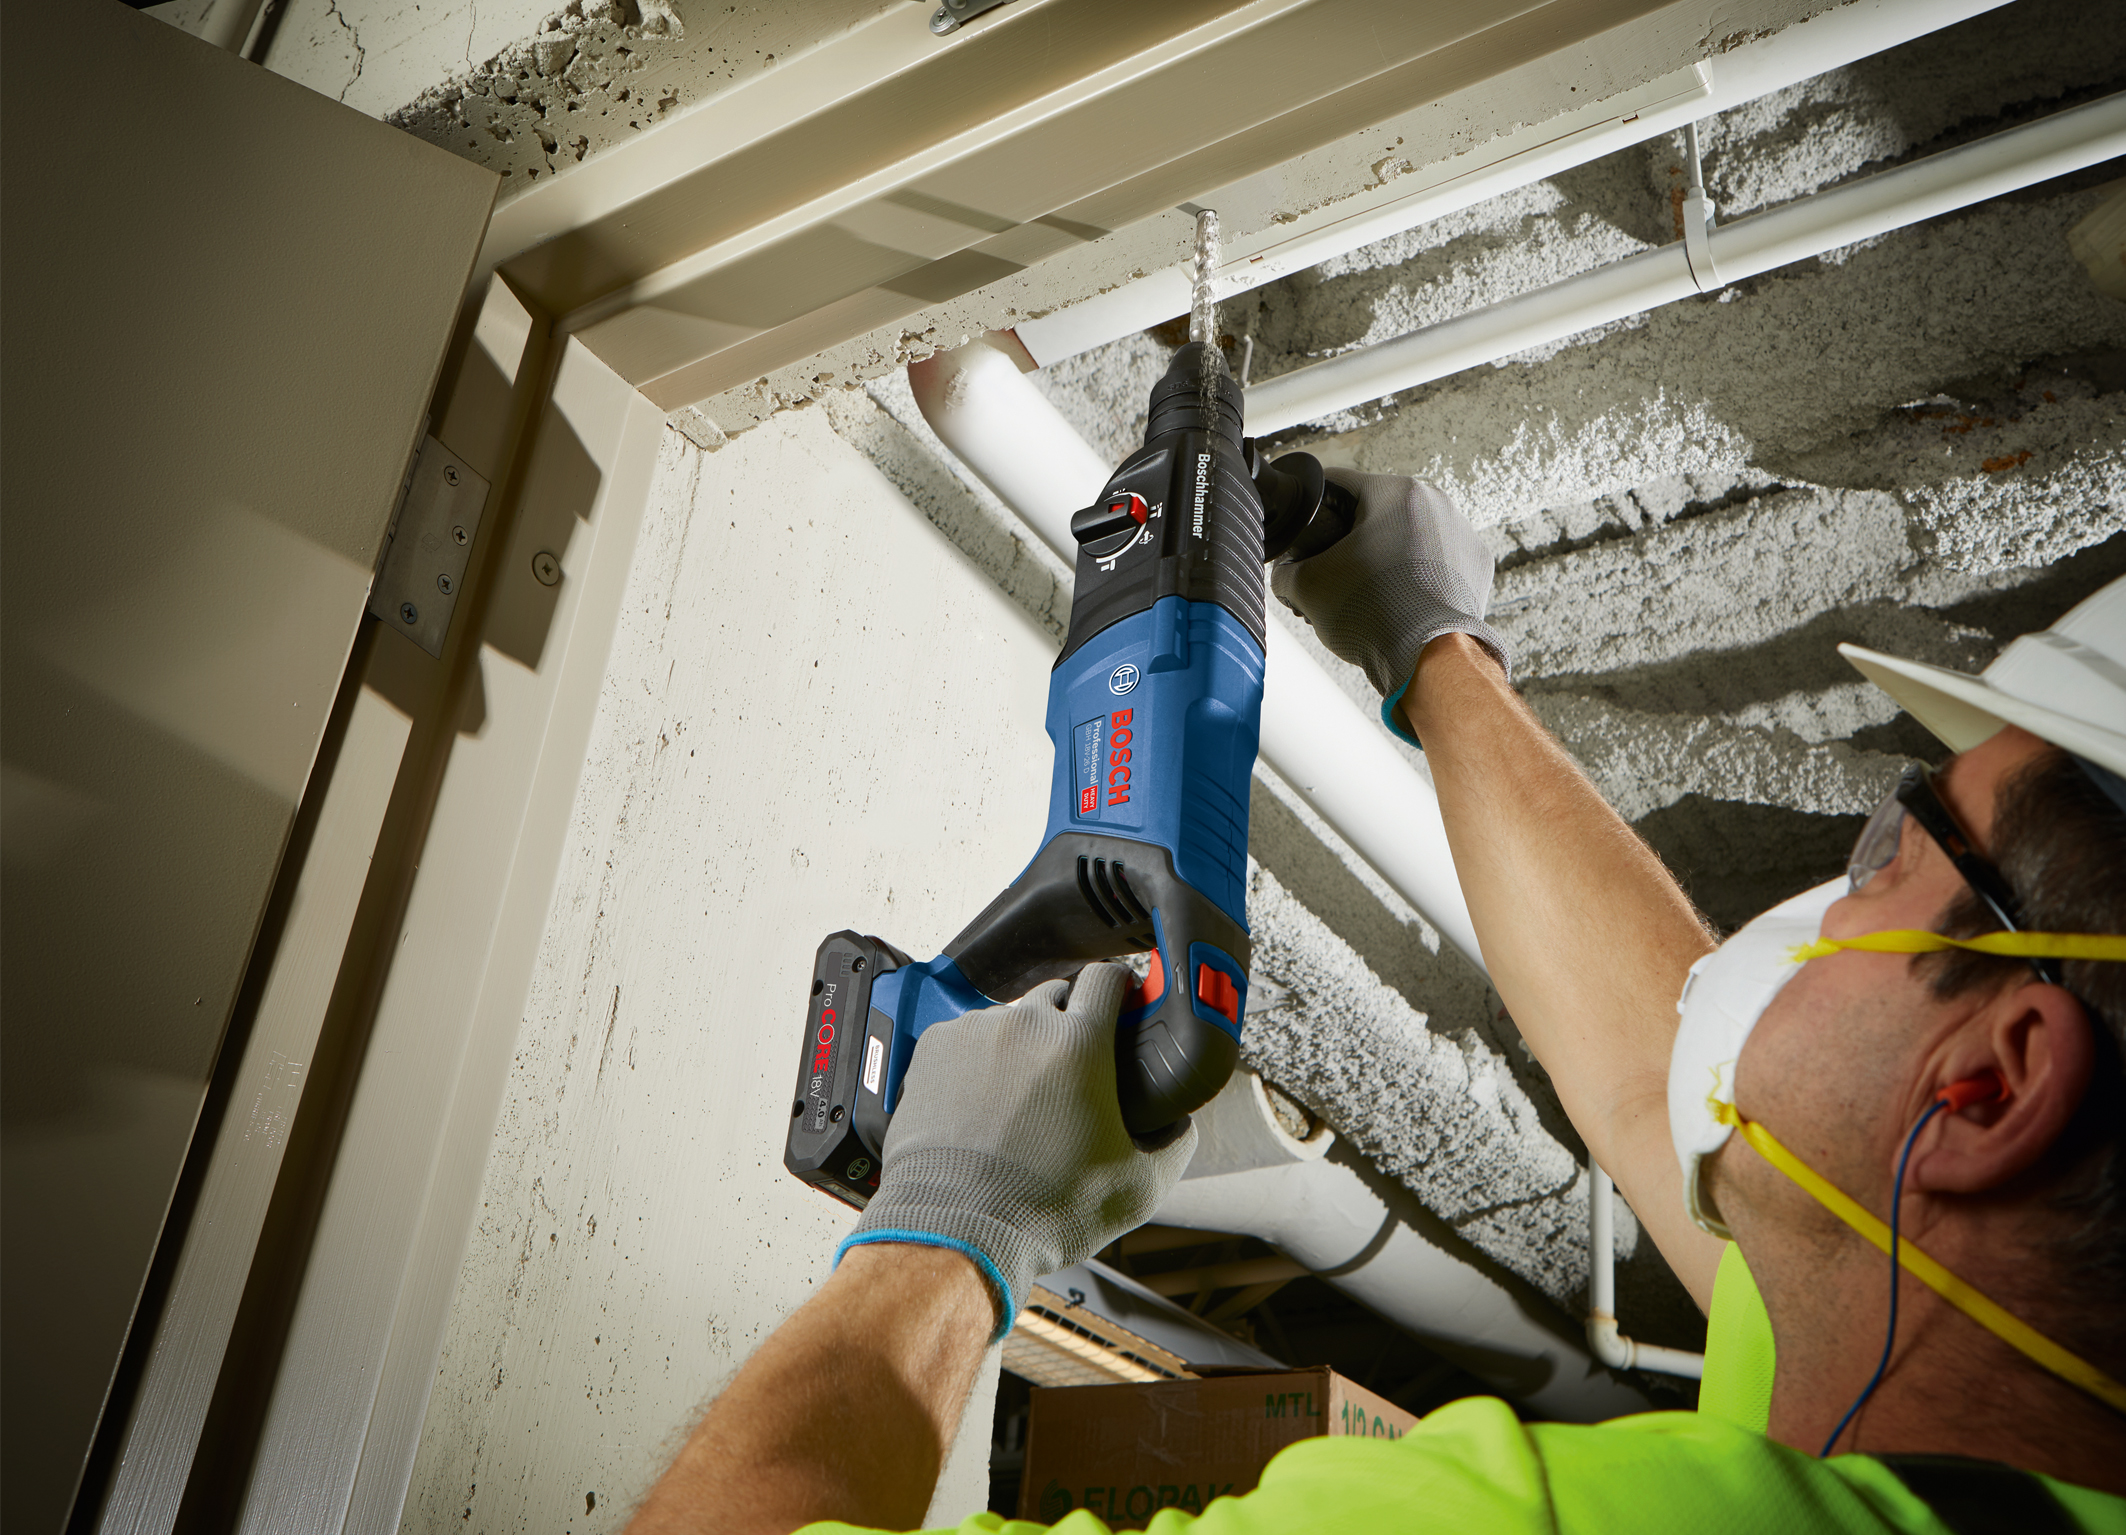 Optimized design for vertical drilling and chiseling: 18 volt rotary hammer GBH 18V-26 D Professional from Bosch for professionals